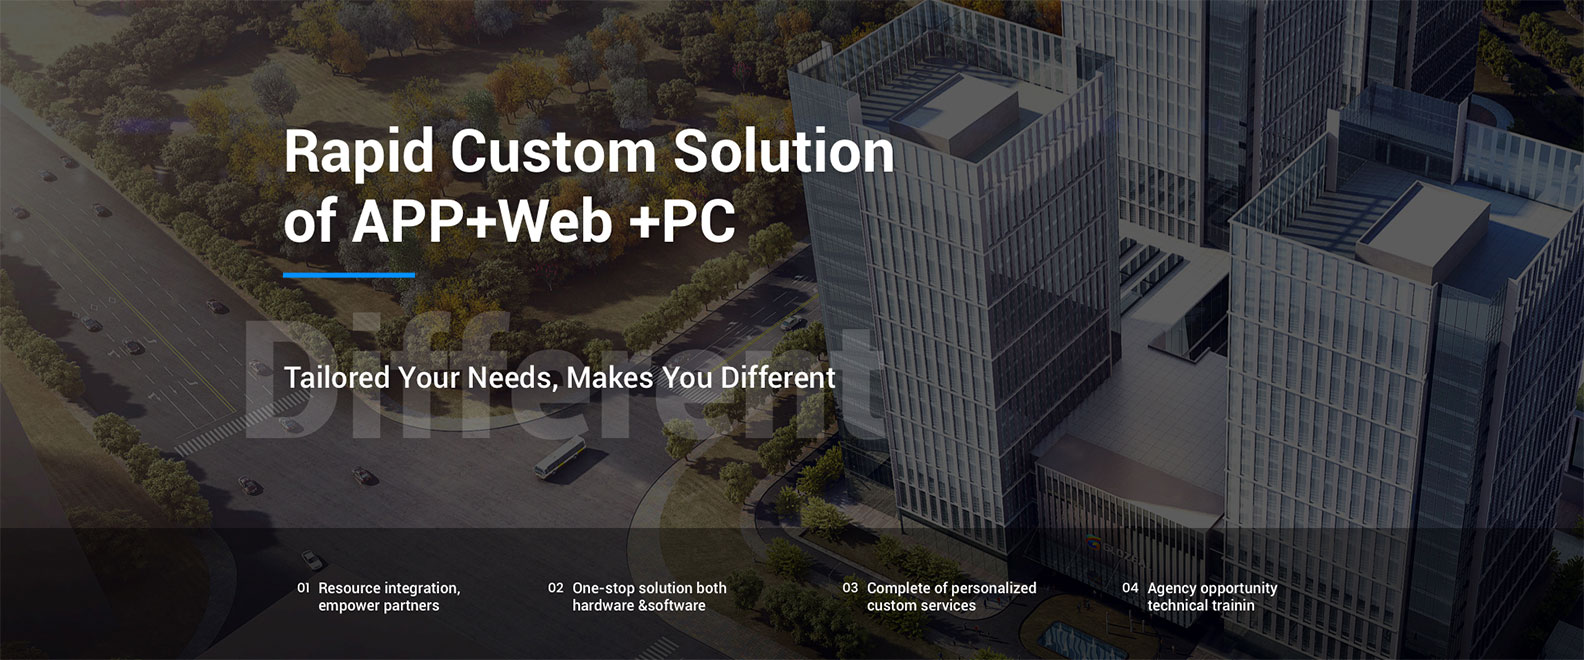 Rapid Custom Solution of APP+Web+PC